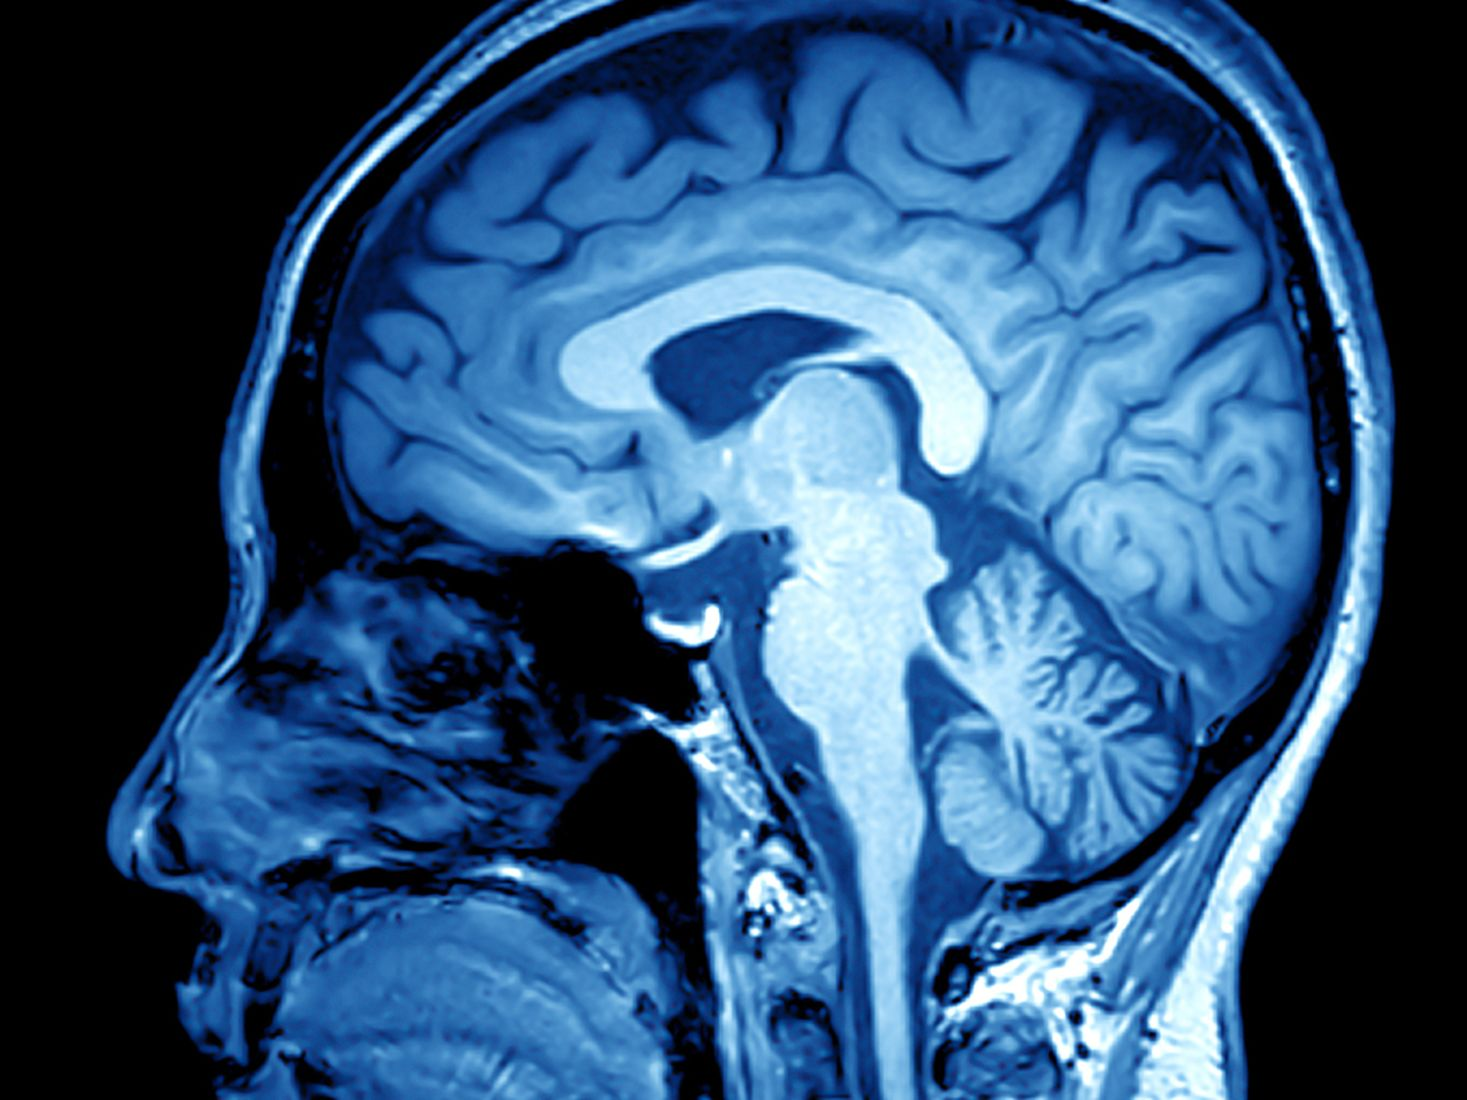 Jis 0816 health brain scan o3yznh